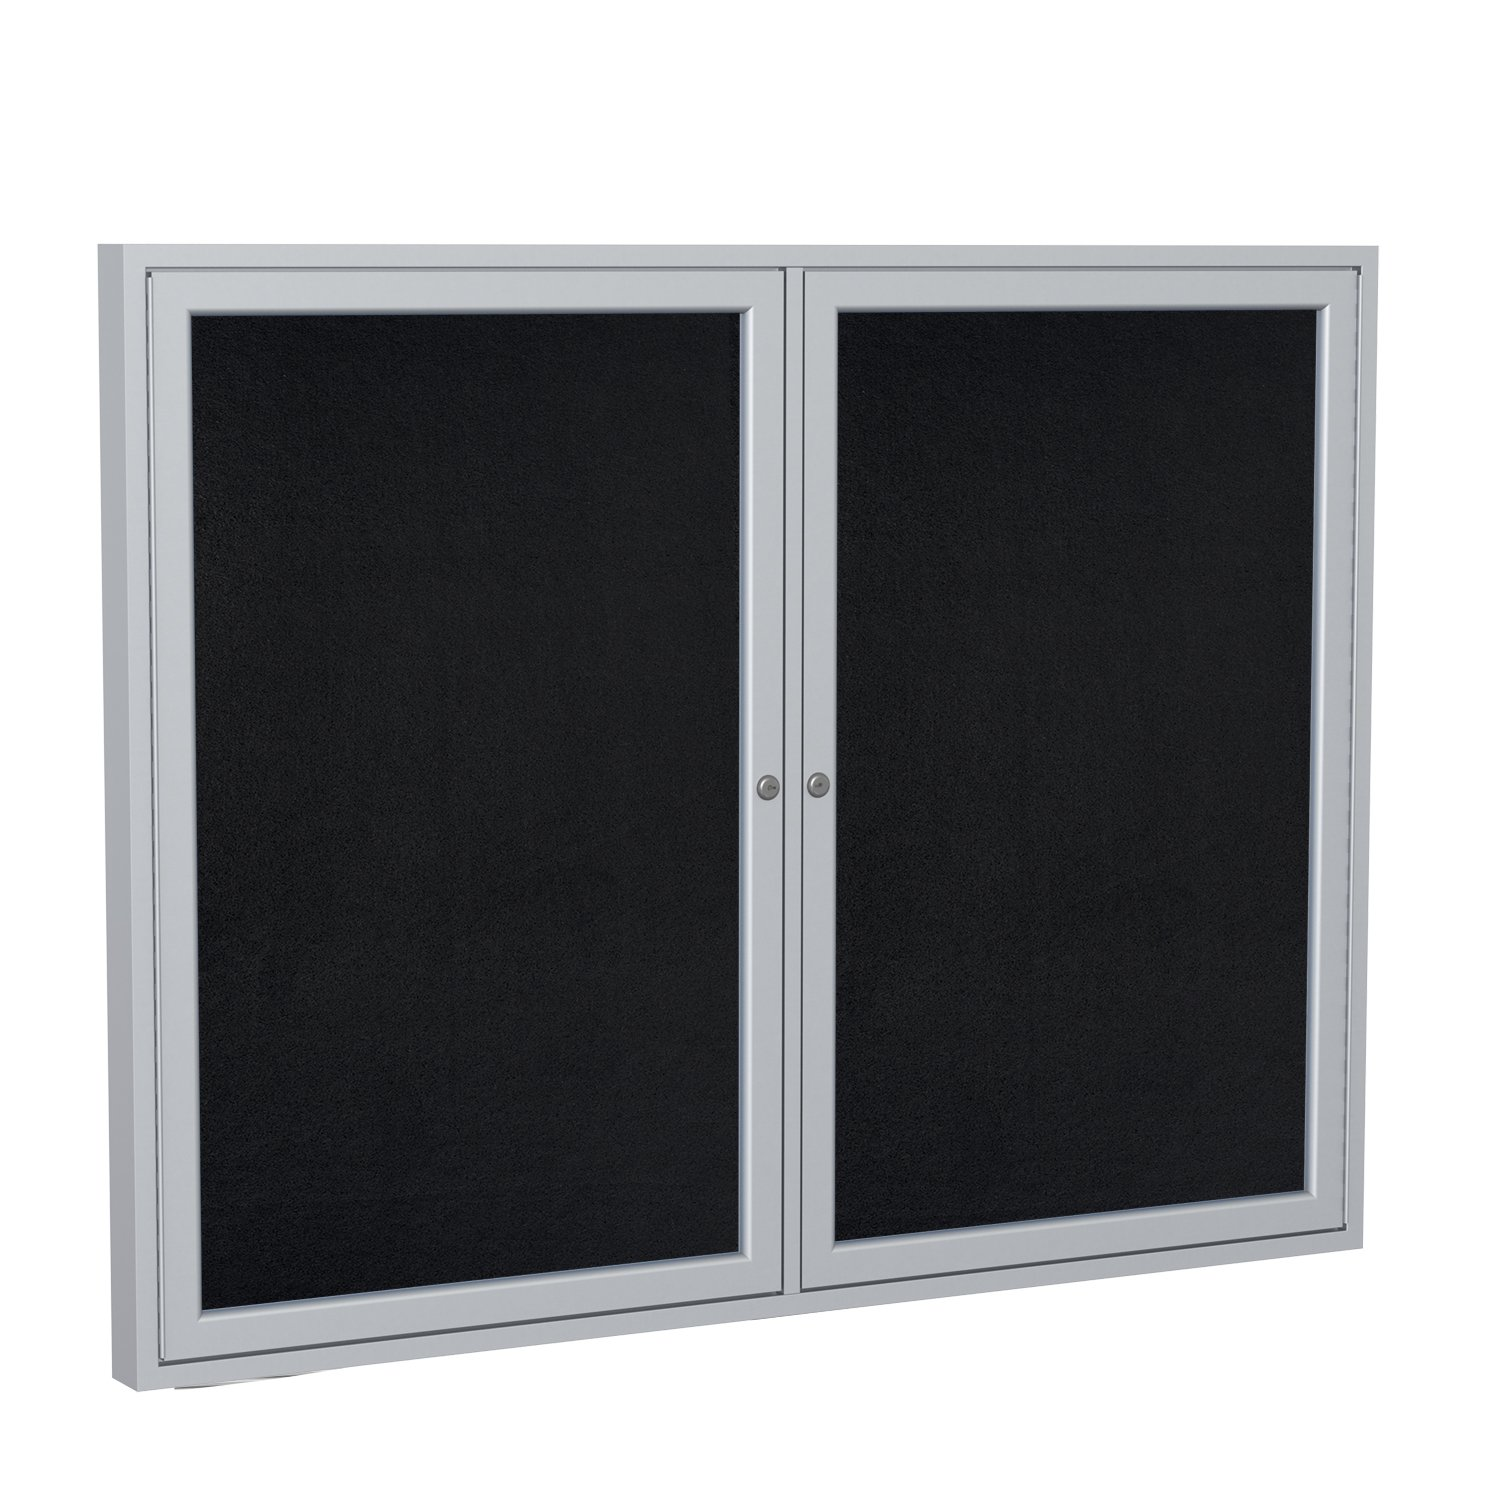 Ghent 36''x48'' 2-Door indoor Enclosed Recycled Rubber Bulletin Board, Shatter Resistant, with Lock, Satin Aluminum Frame,Black (PA23648TR-BK) ,Made in the USA